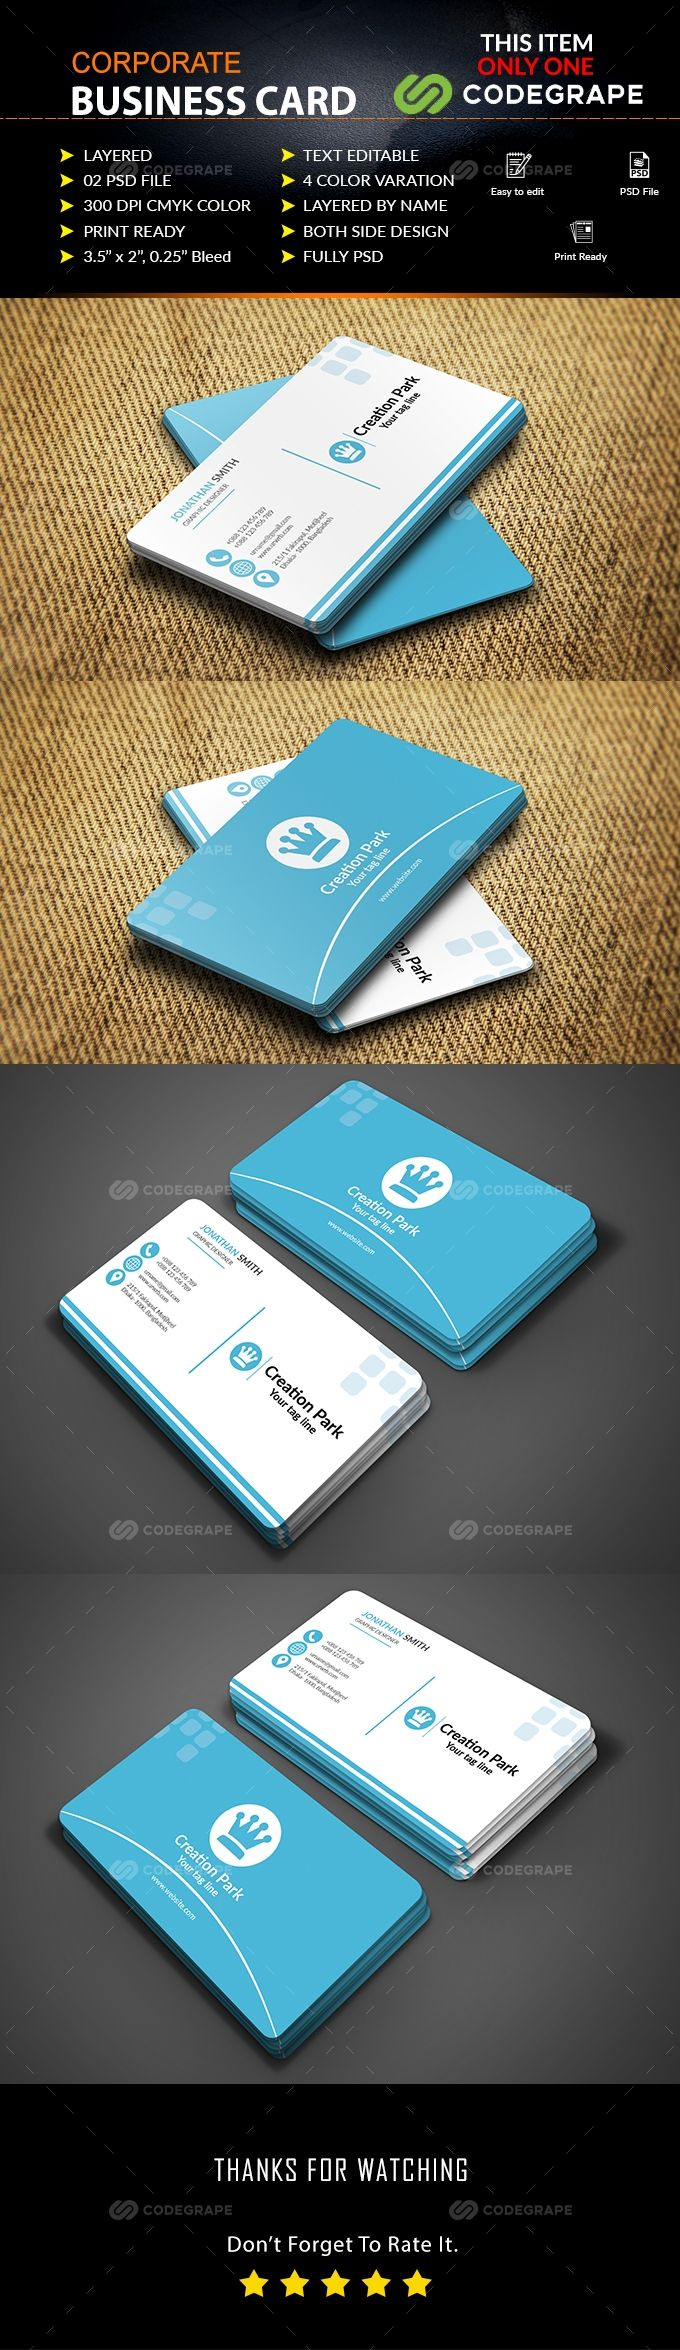 Corporate Business Card on @codegrape. More Info: https://www.codegrape.com/item/corporate-business-card/17326